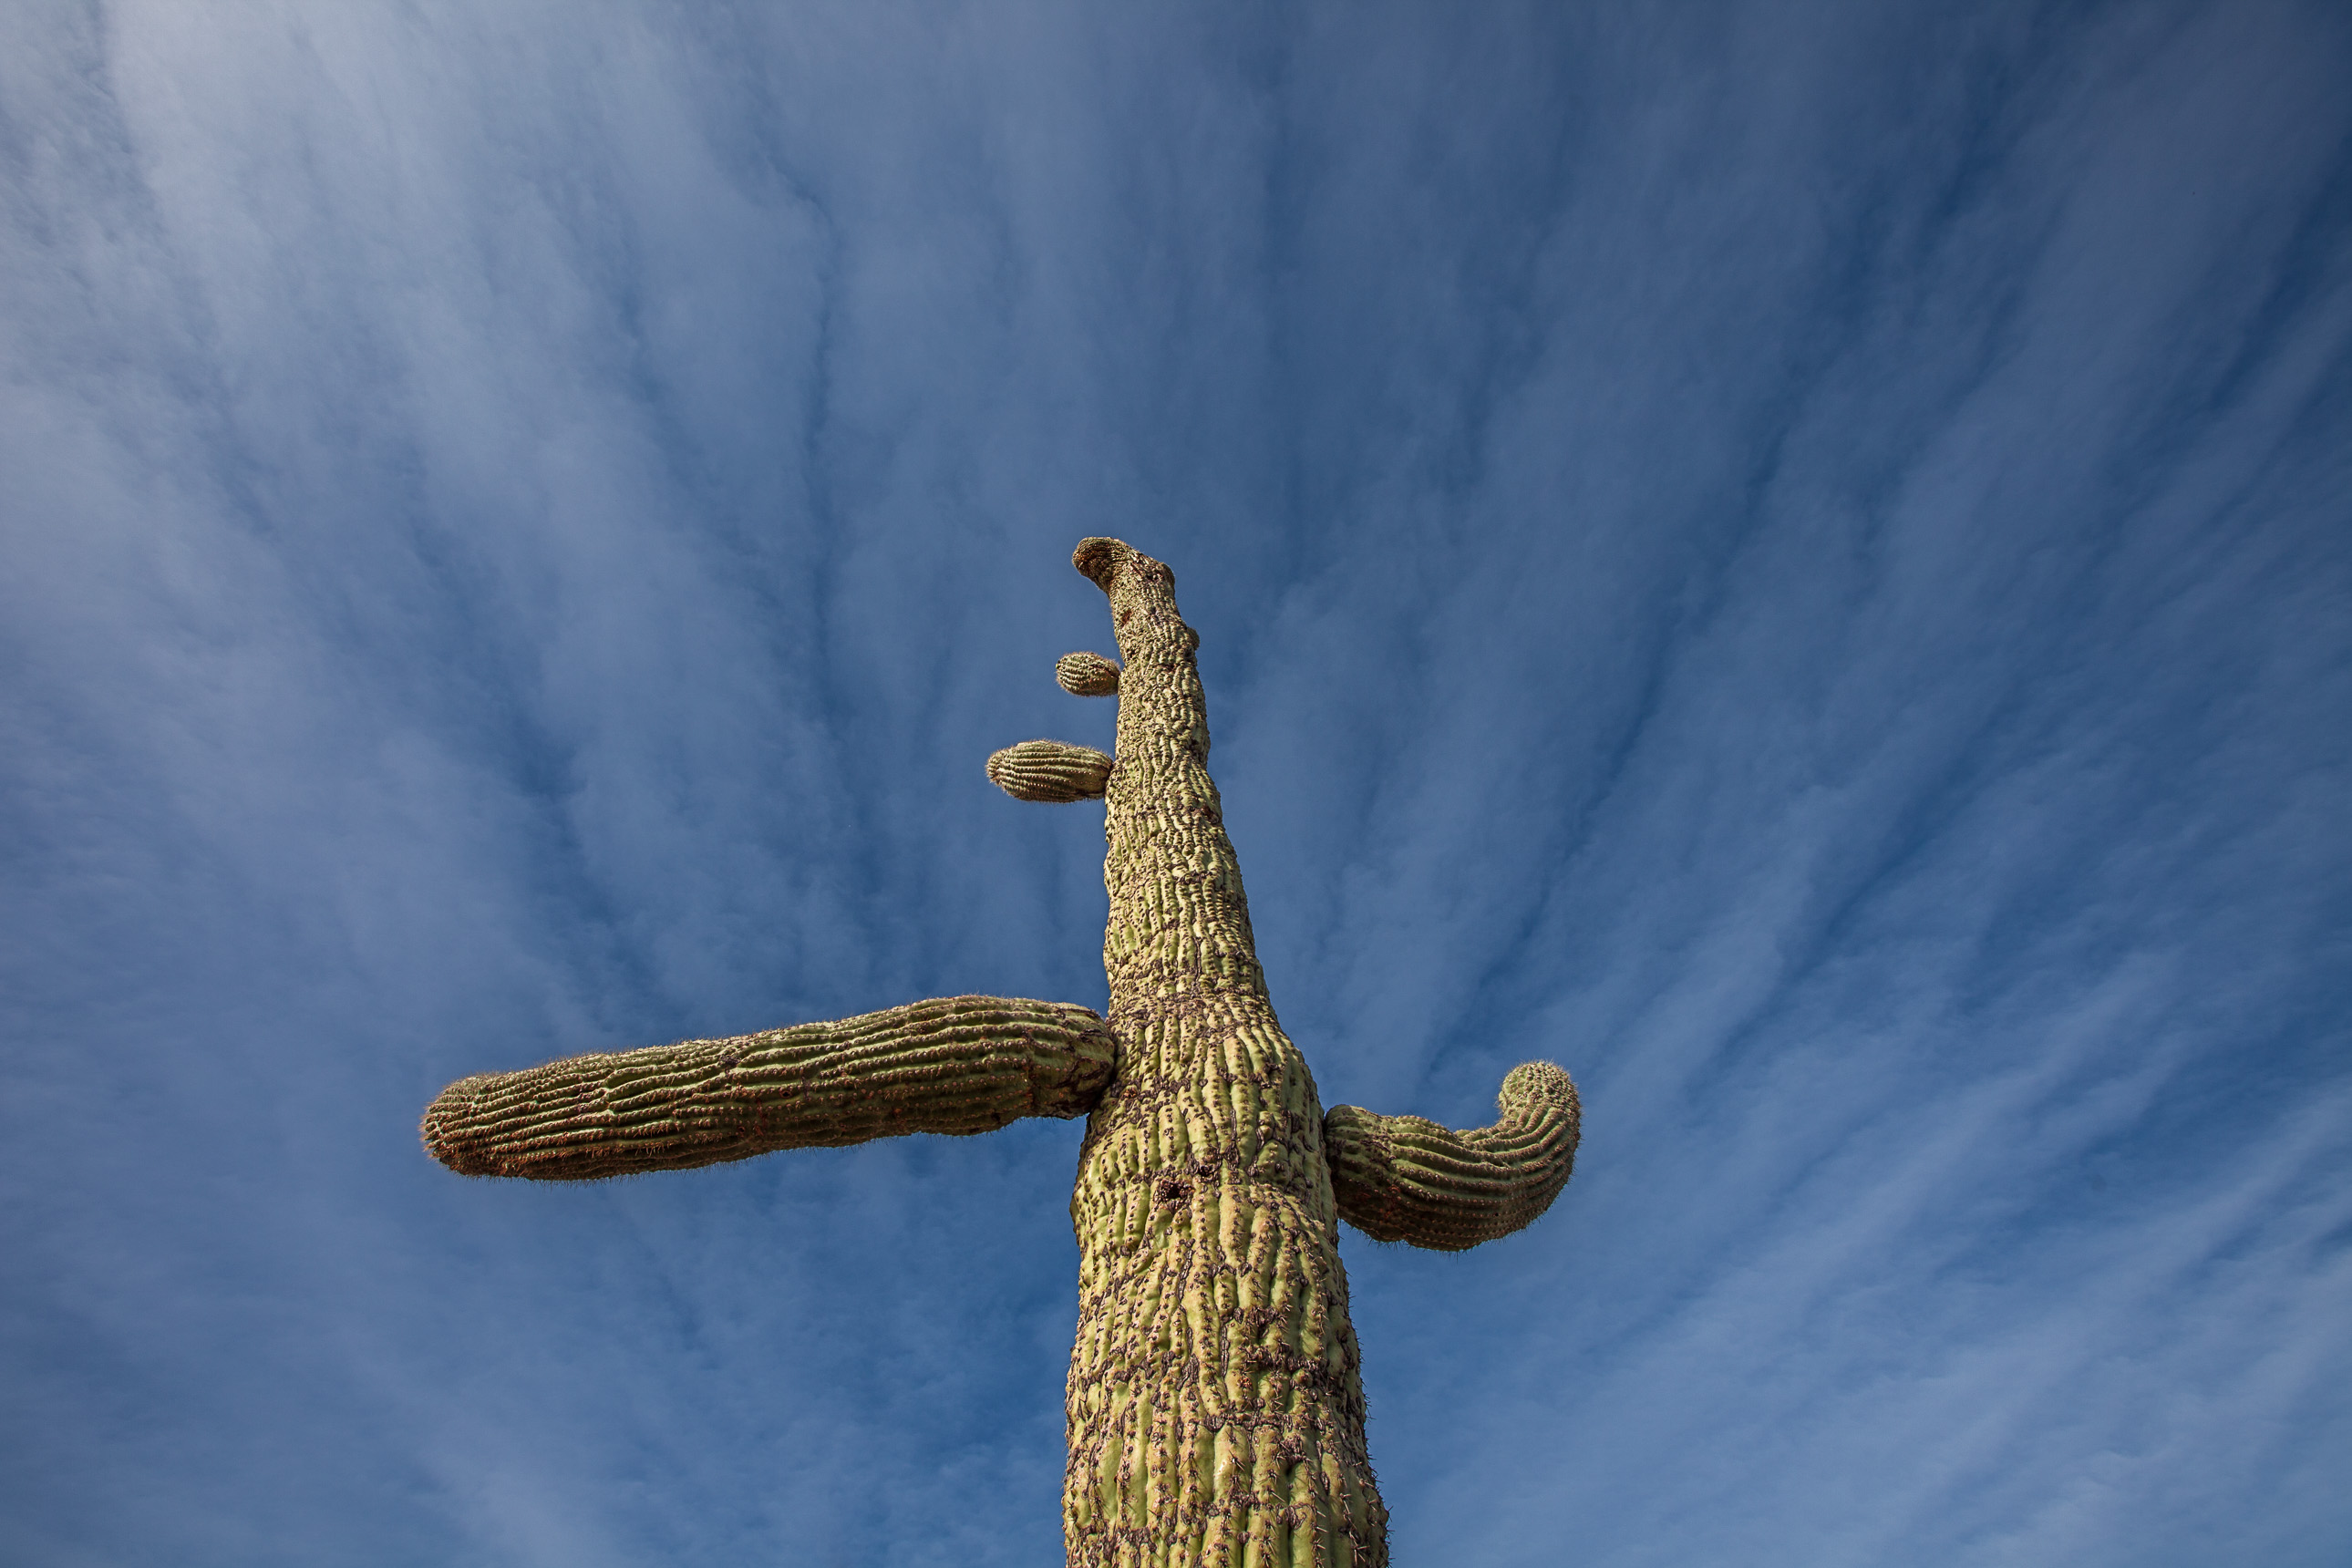 Flying crested saguaro cactus